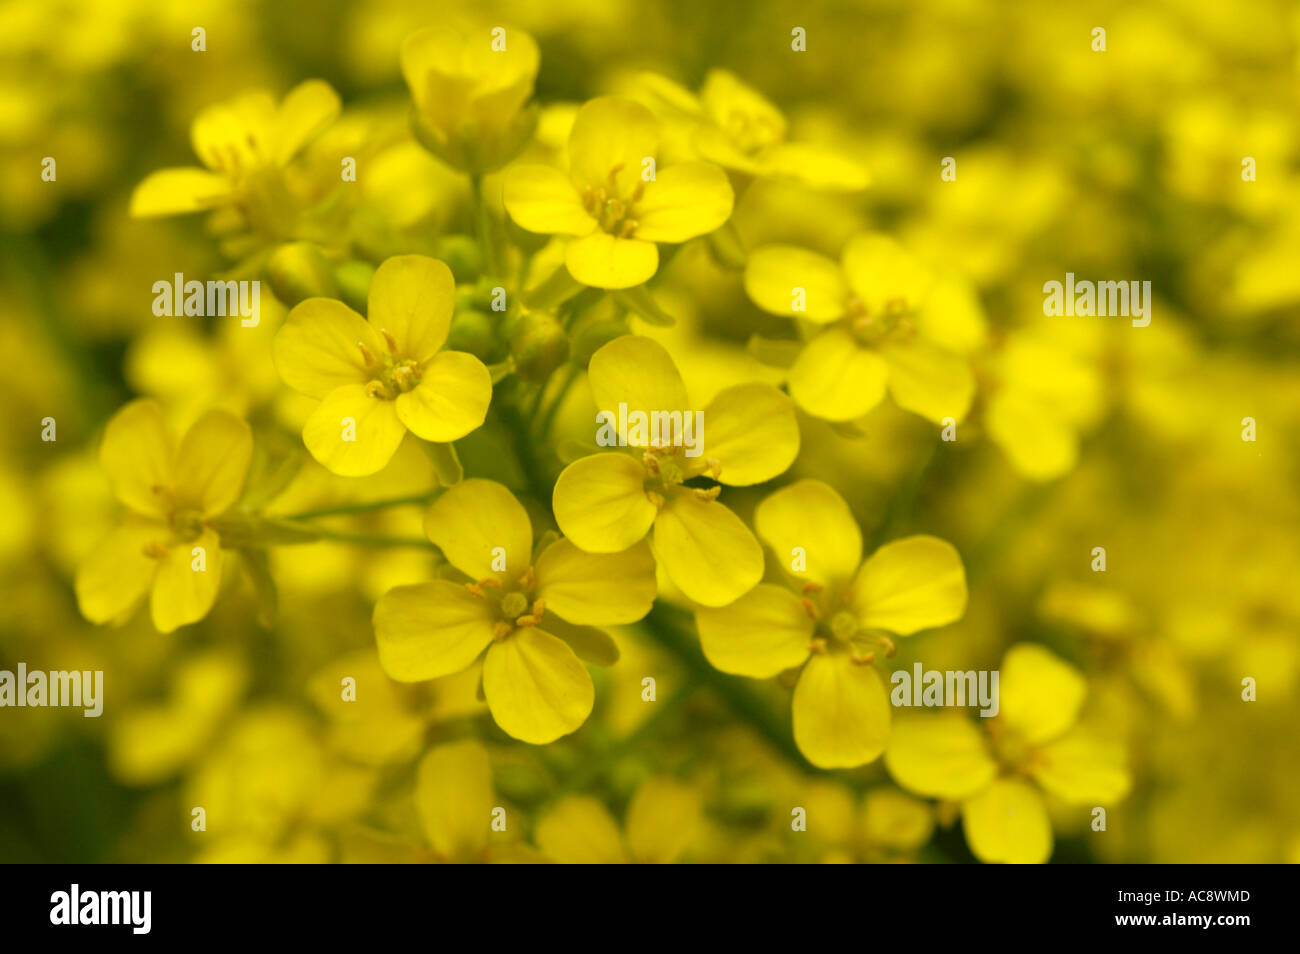 Yellow Flowers Of Warty Cabbage Or Hill Mustard Or Turkish Rocket Or